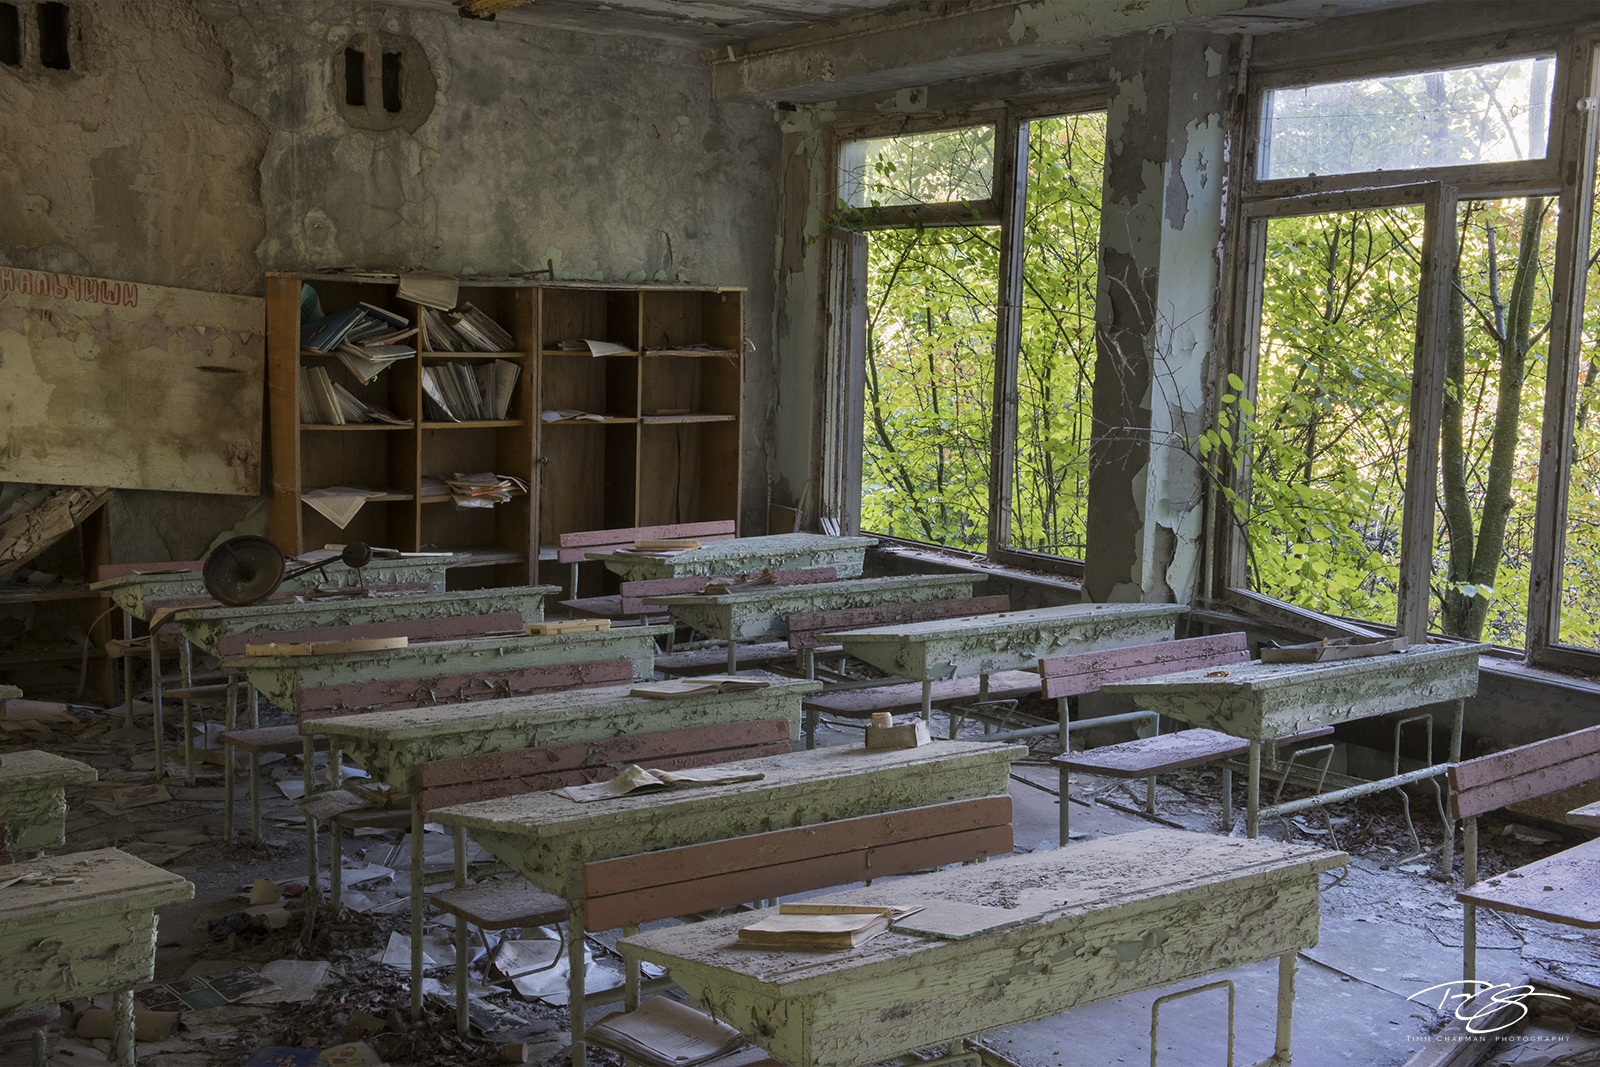 chernobyl, chornobyl, pripyat, exclusion zone, abandoned, forgotten, wasteland, radioactive, decay, classroom, school, class, desk, schoolbook, worn book, well read, dirty book, discarded book, dust, photo